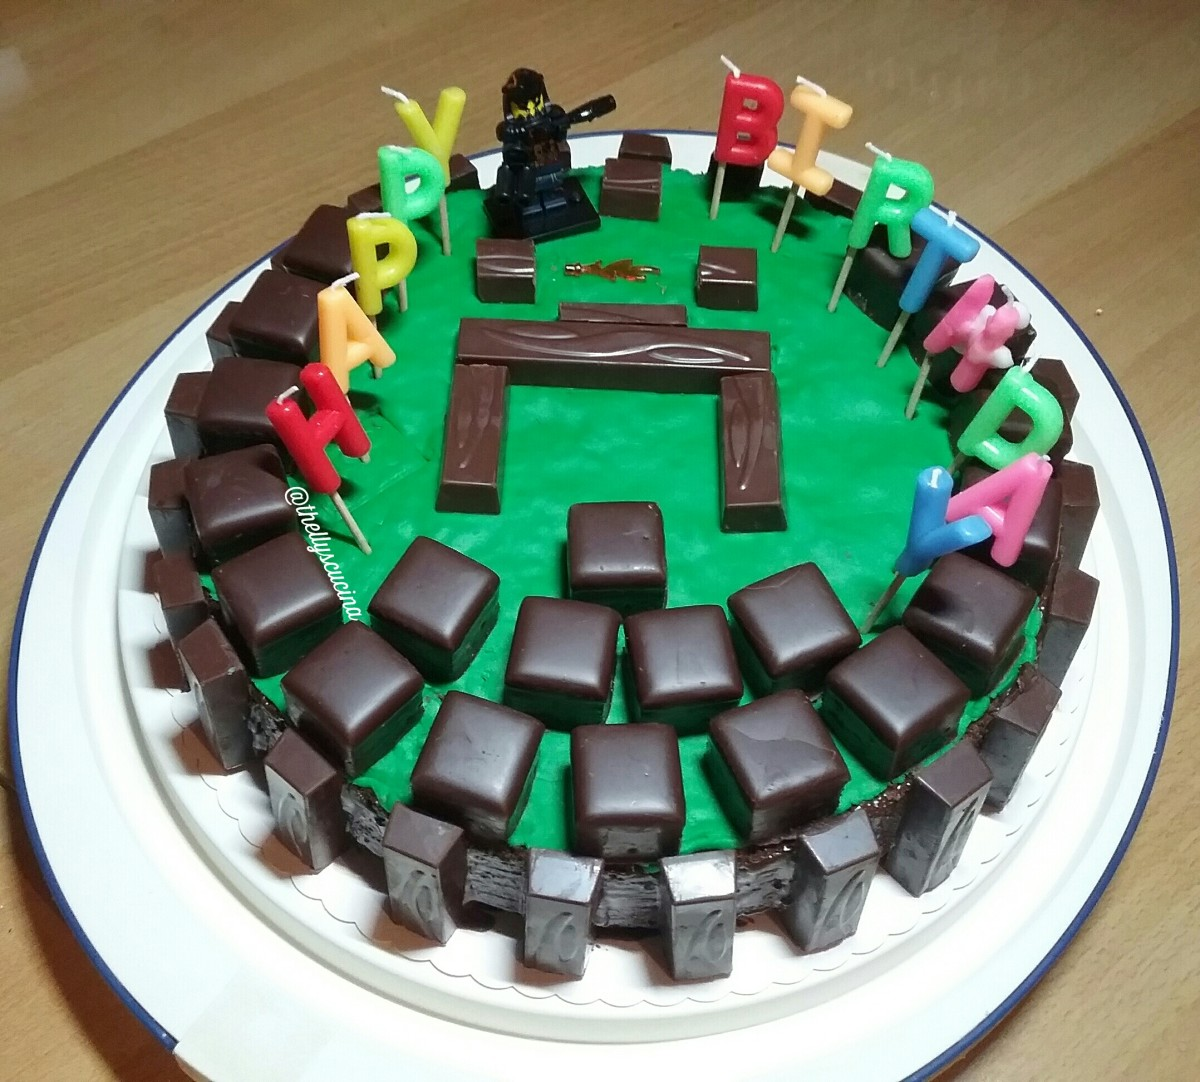 Then blocks of yummy chocolates were put on top making a circle and yes, just like building blocks of chocolates. A small warrior and a sword of Minecraft was added to the decorations. Then  happy birthday candles on the cake.